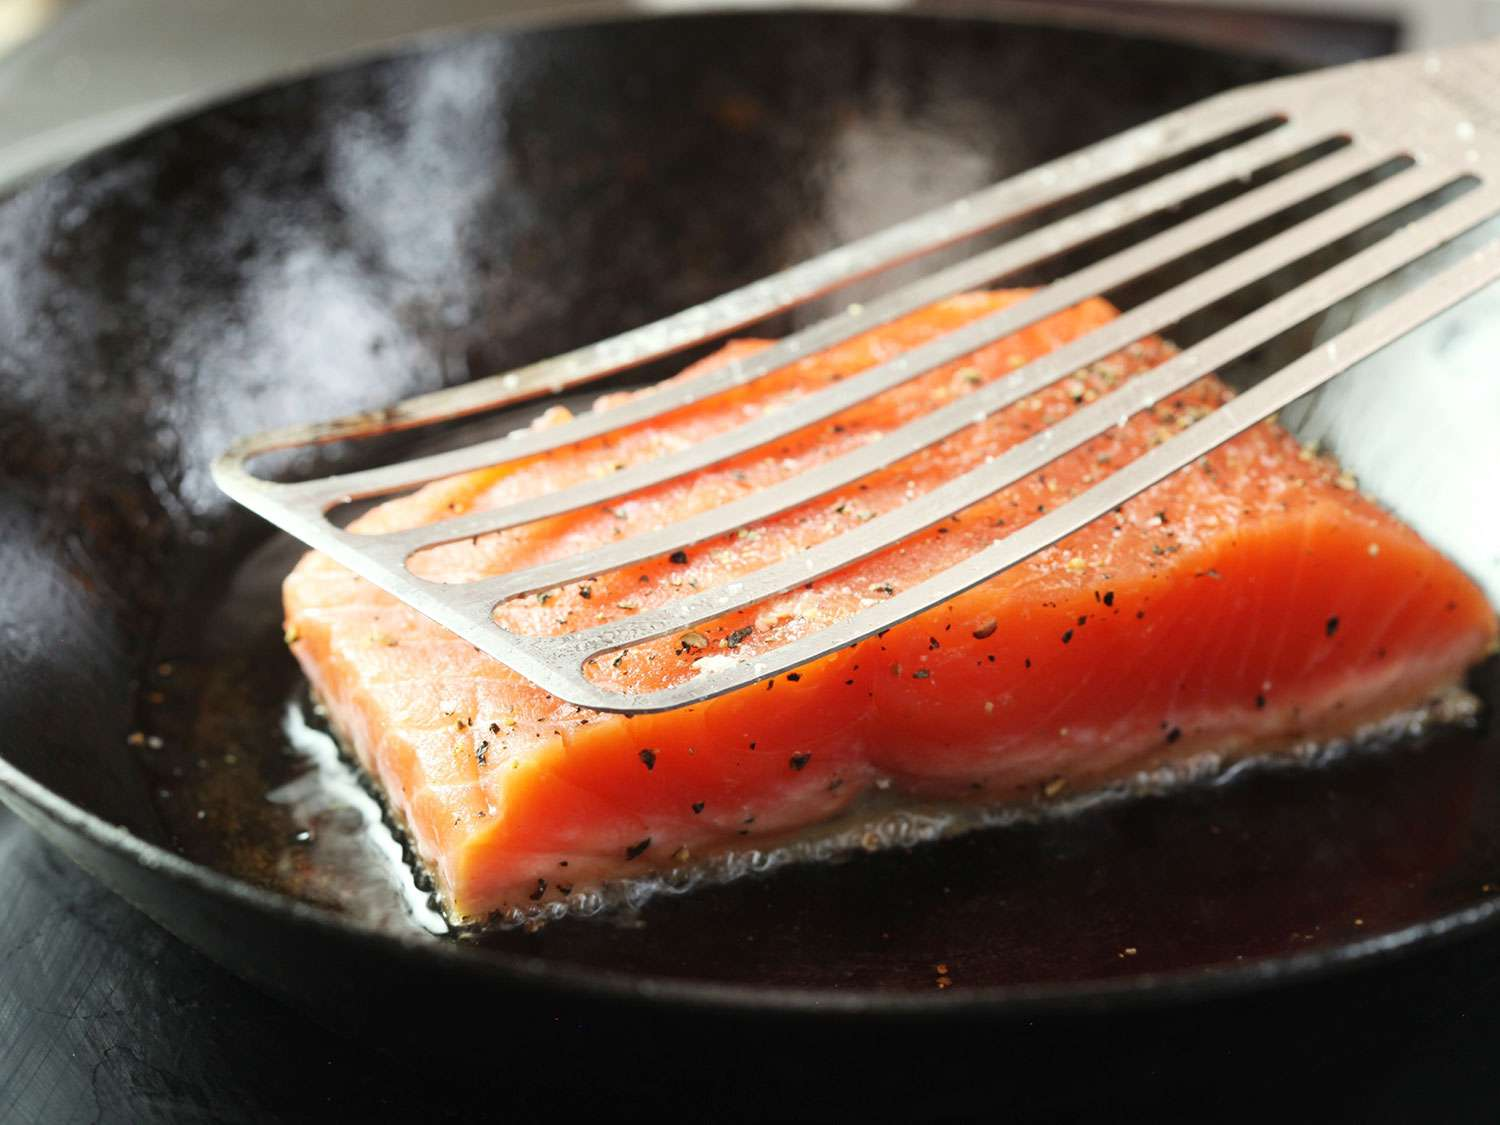 A slotted fish spatula pressing down on a piece of salmon in a cast iron pan